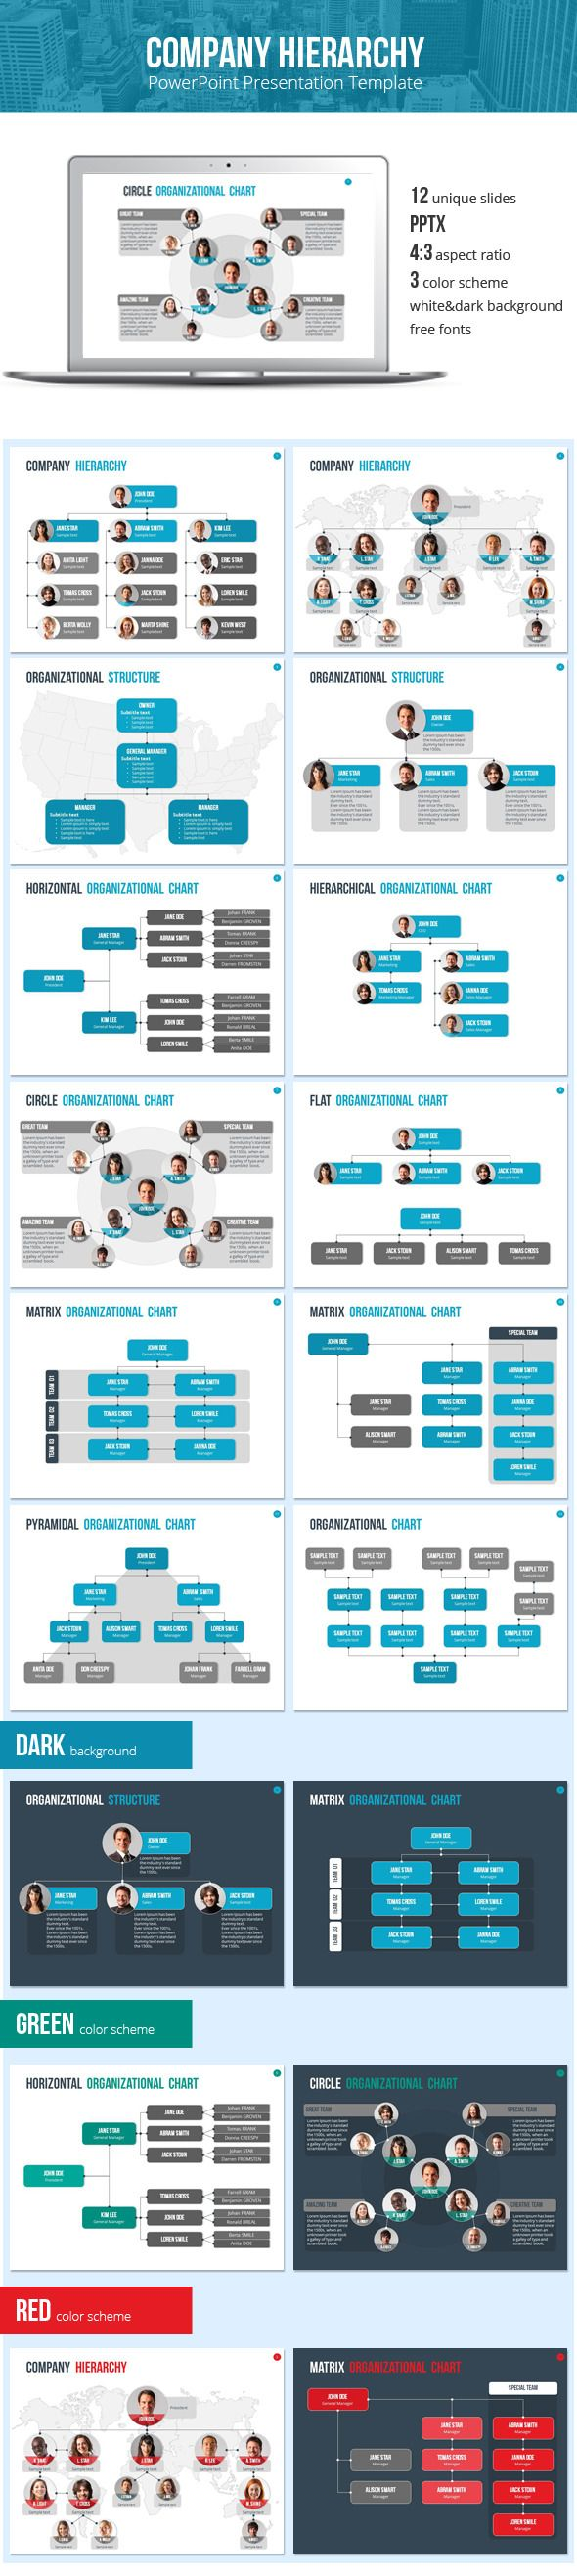 Organizational Chart And Hierarchy Template Pinterest Business - Fresh powerpoint business plan template scheme